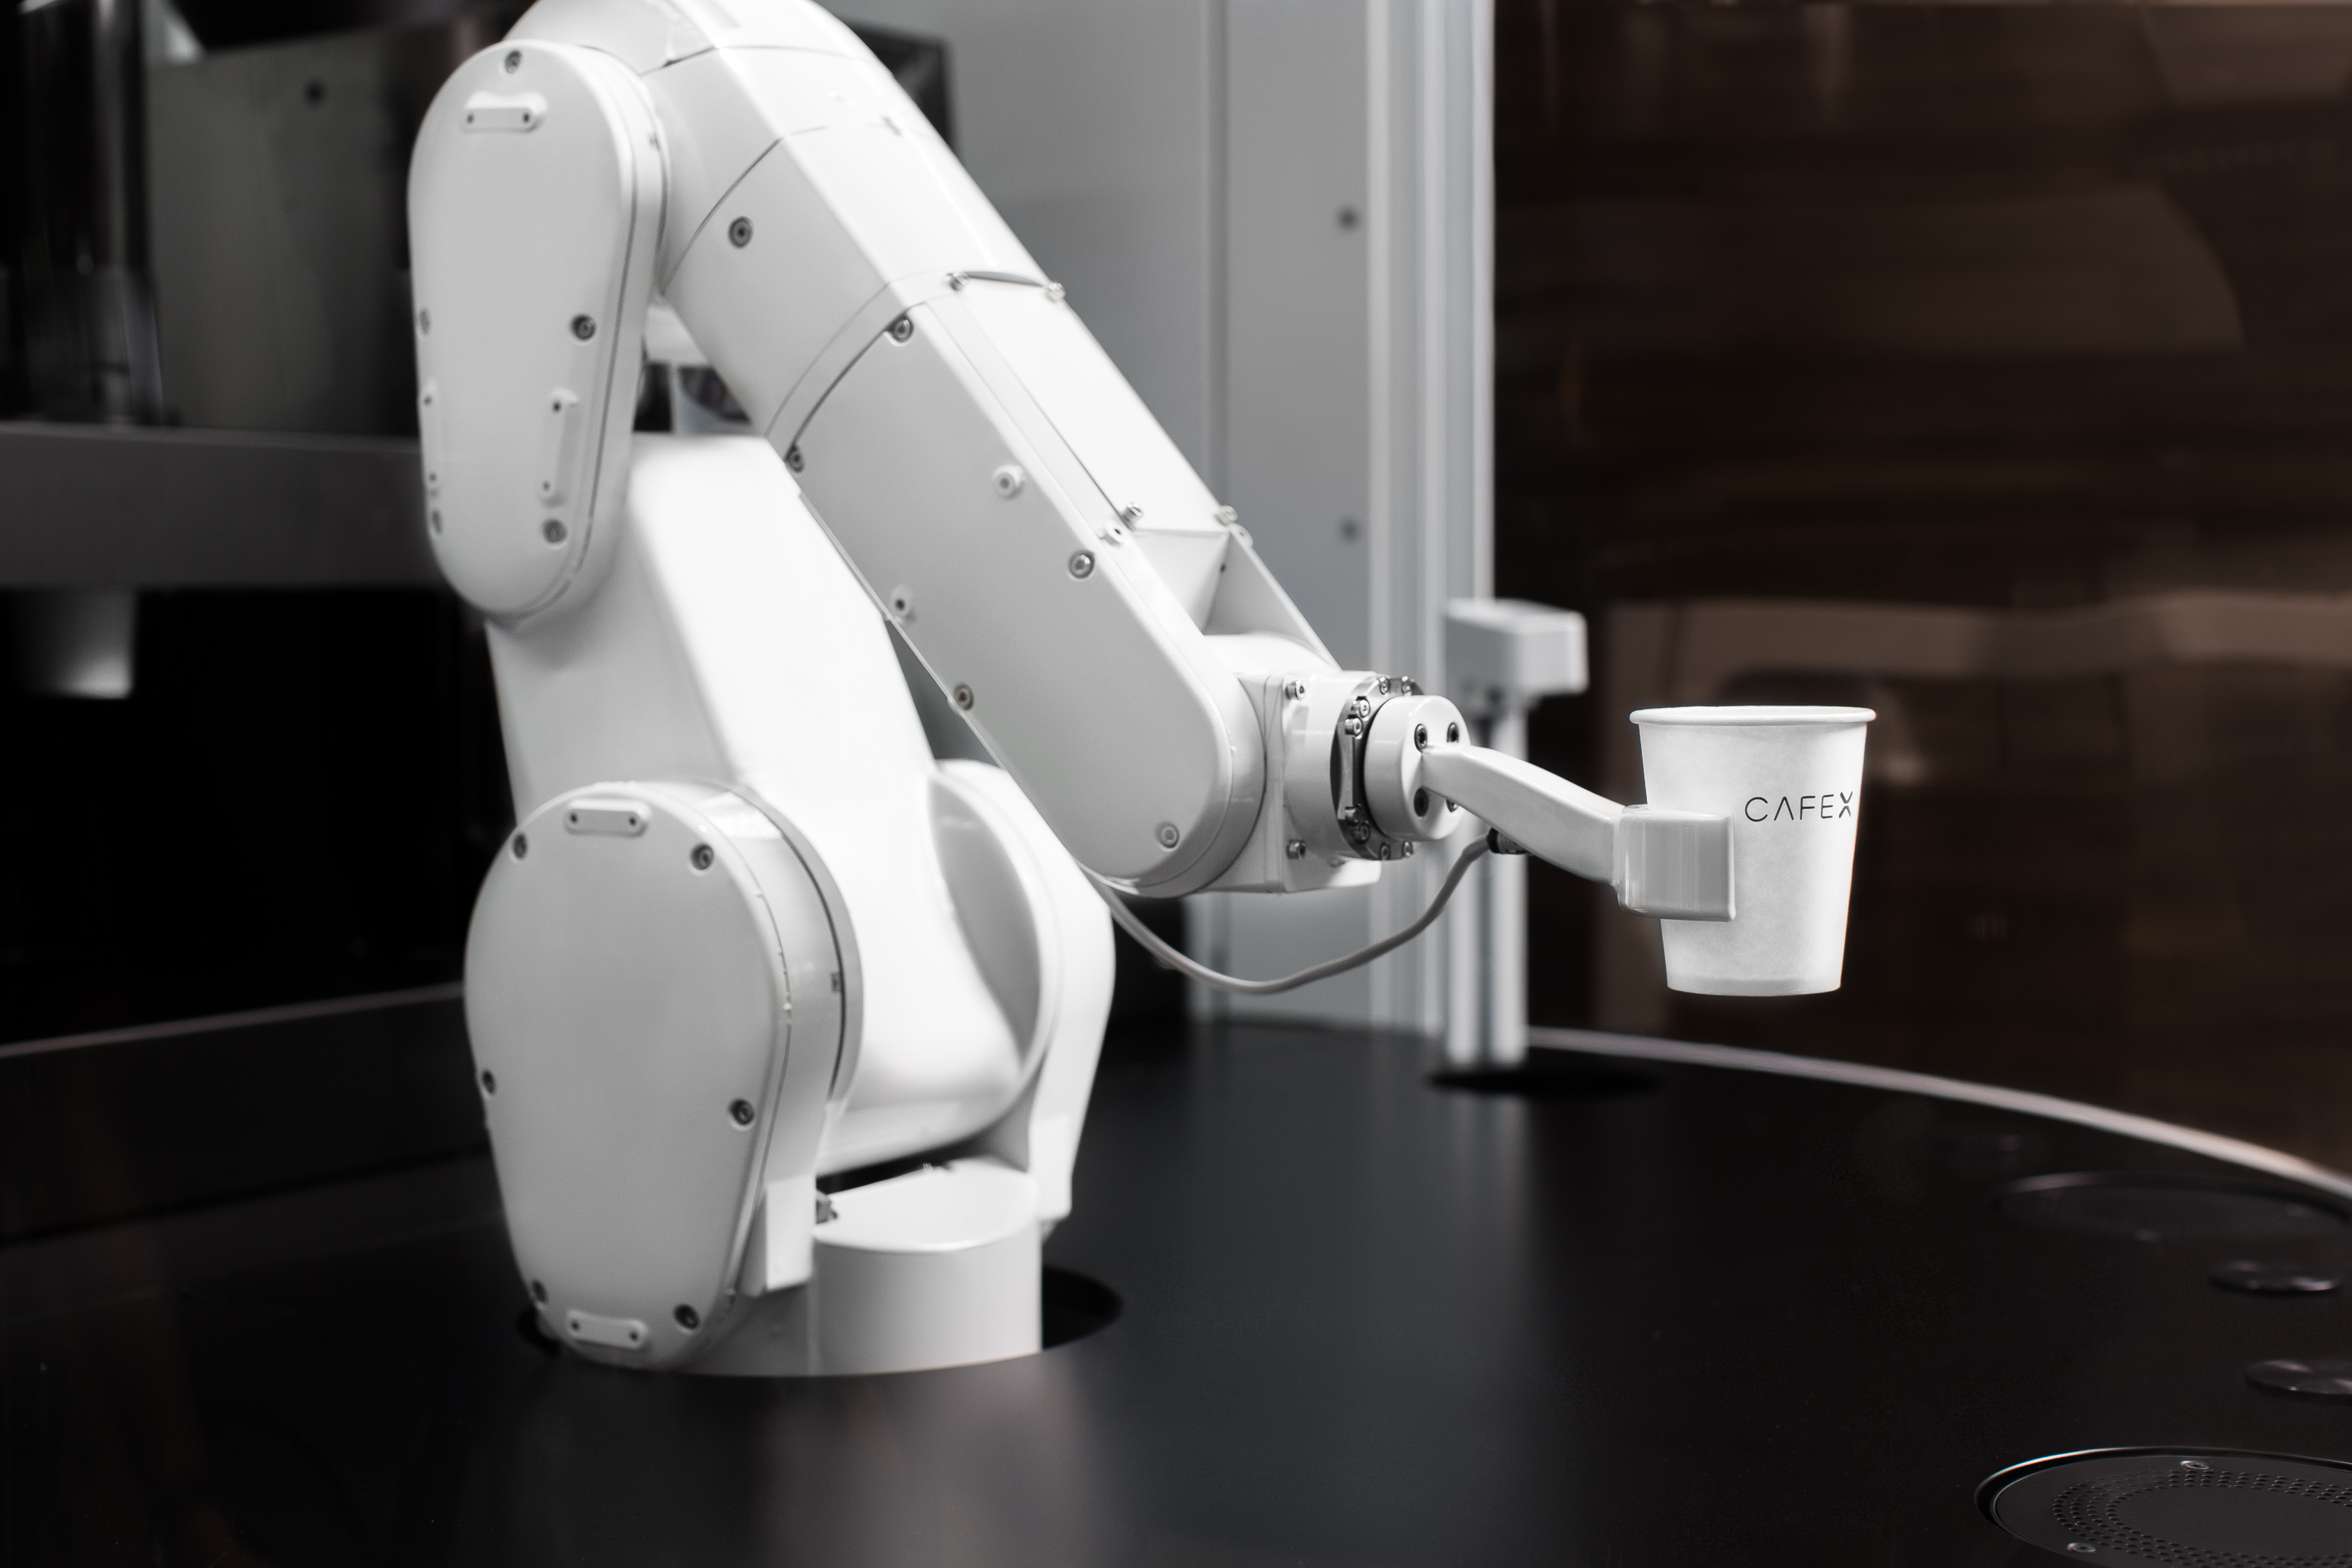 Heard the one about the robot barista?